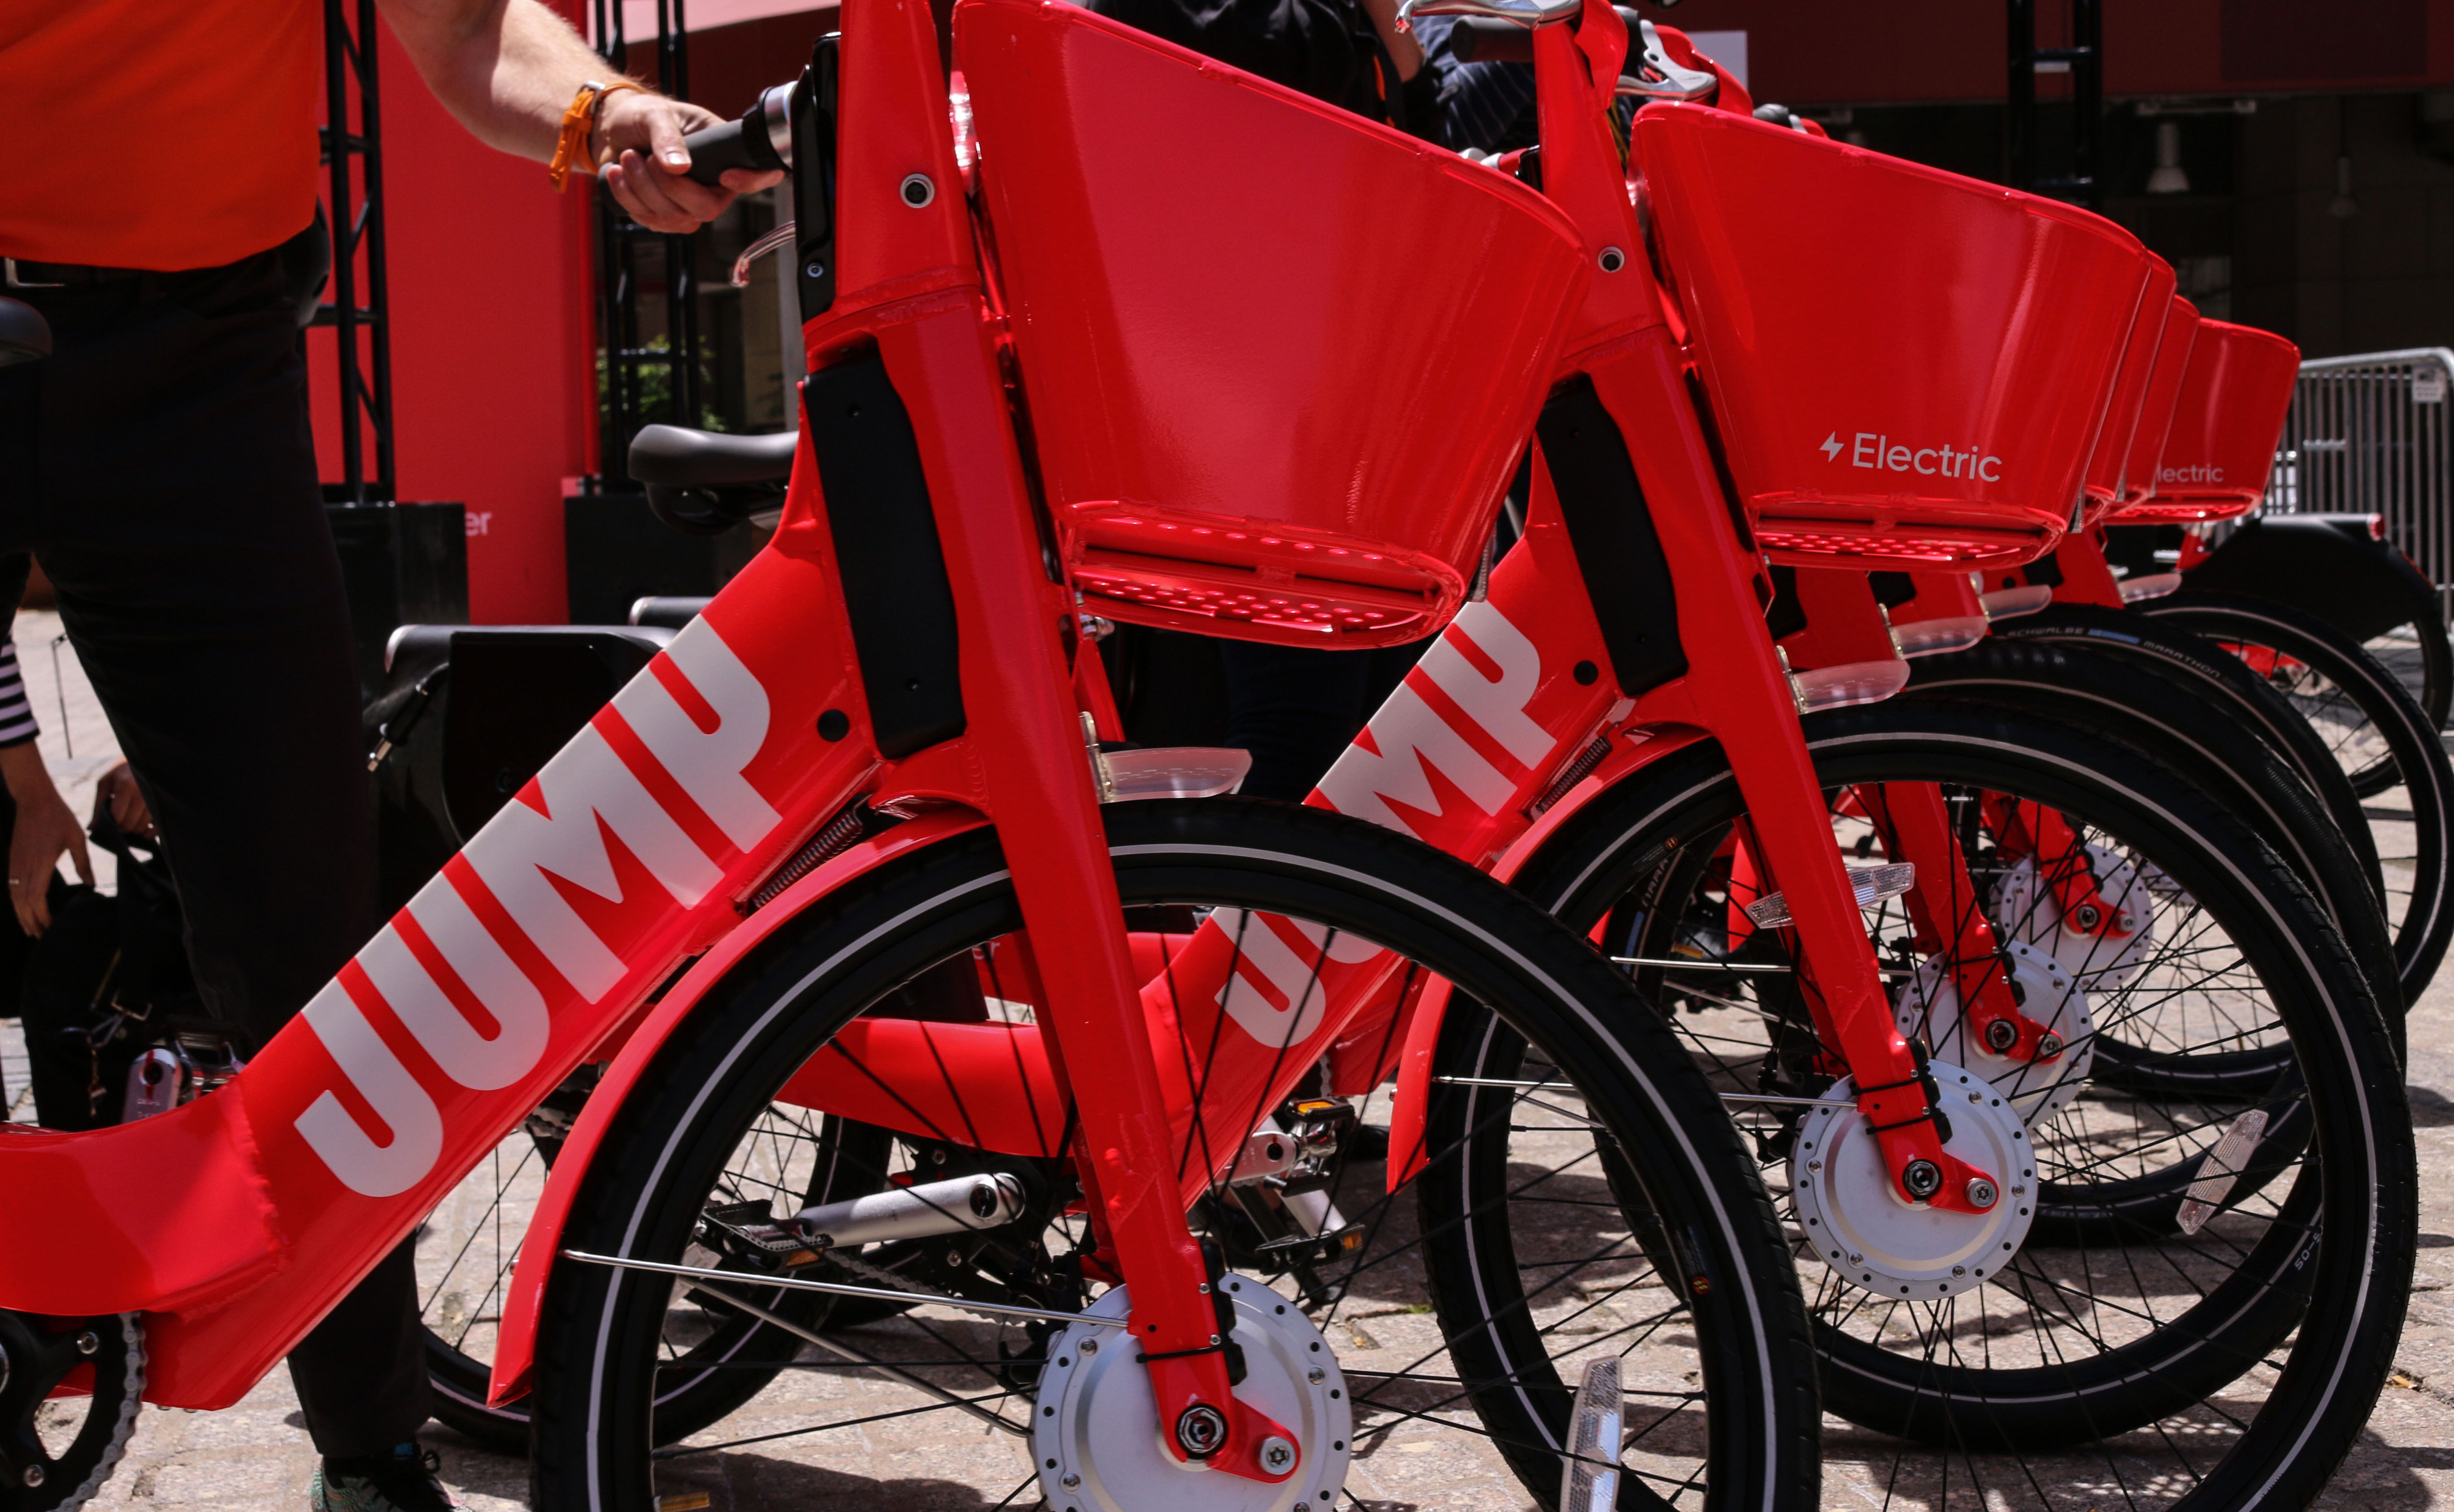 Jump bike service sees a big price increase in Providence